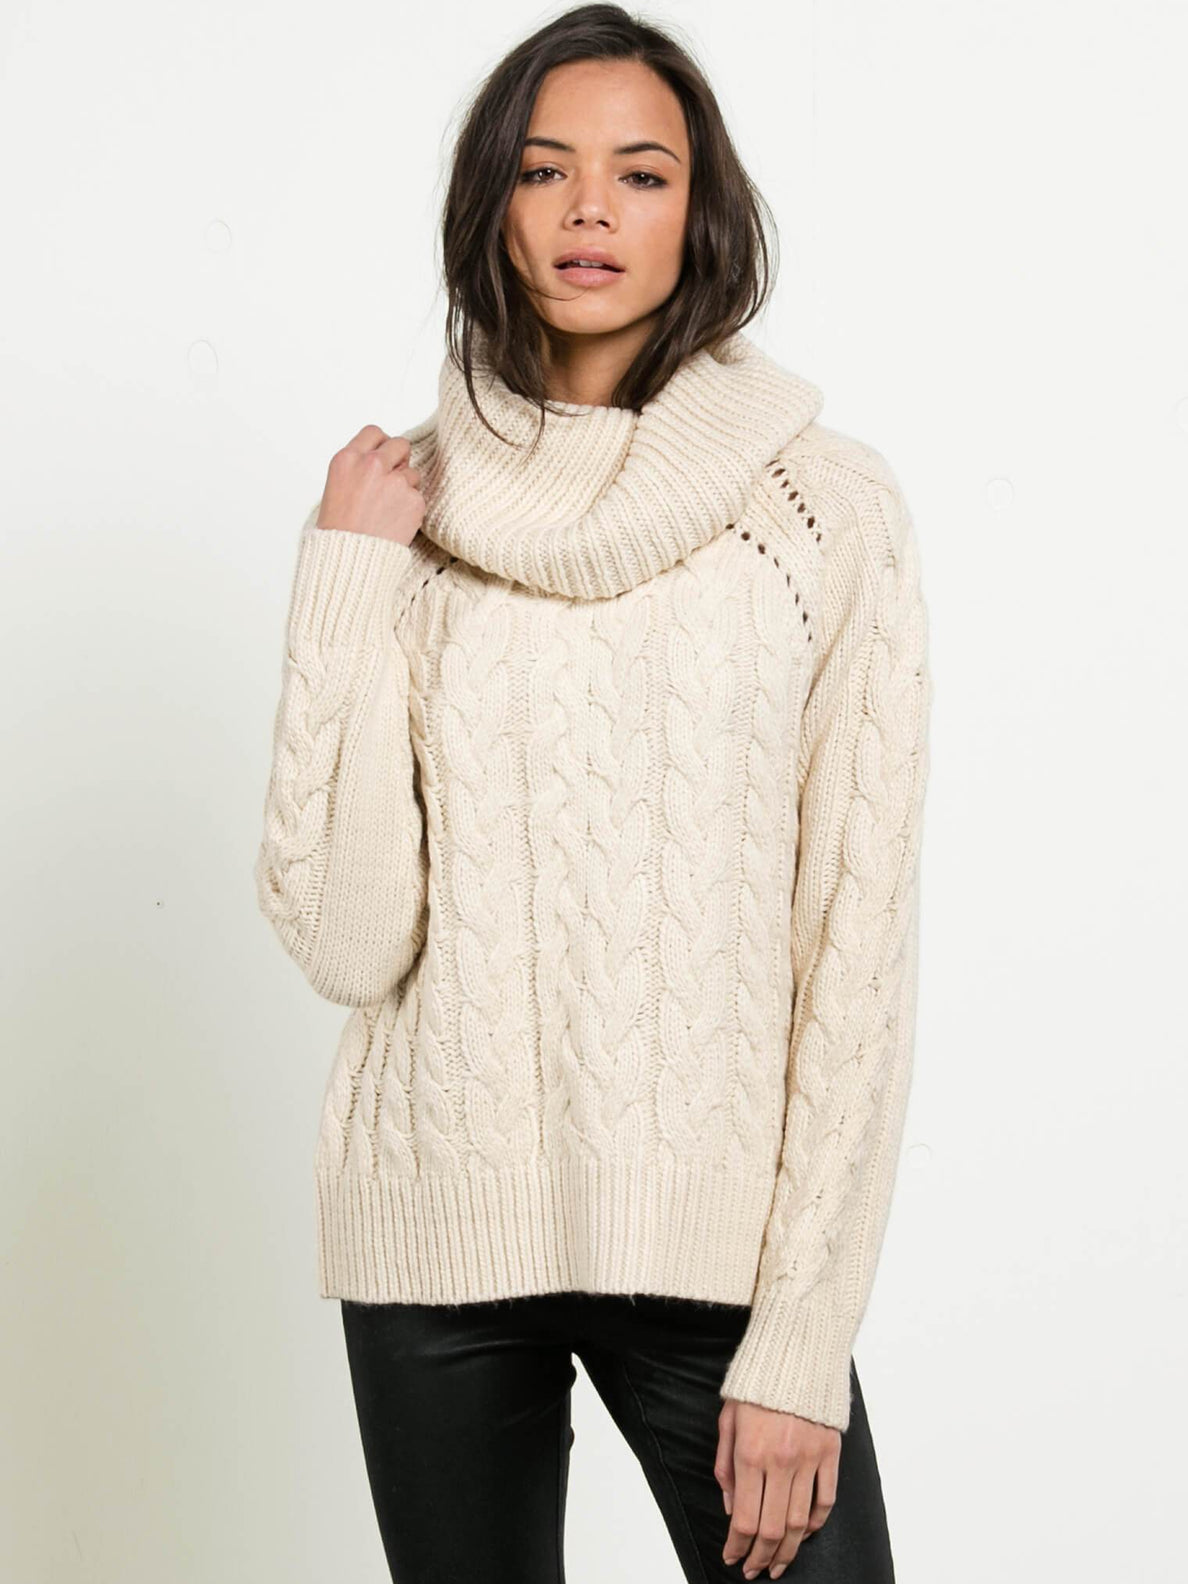 Snooders Sweater - Oatmeal